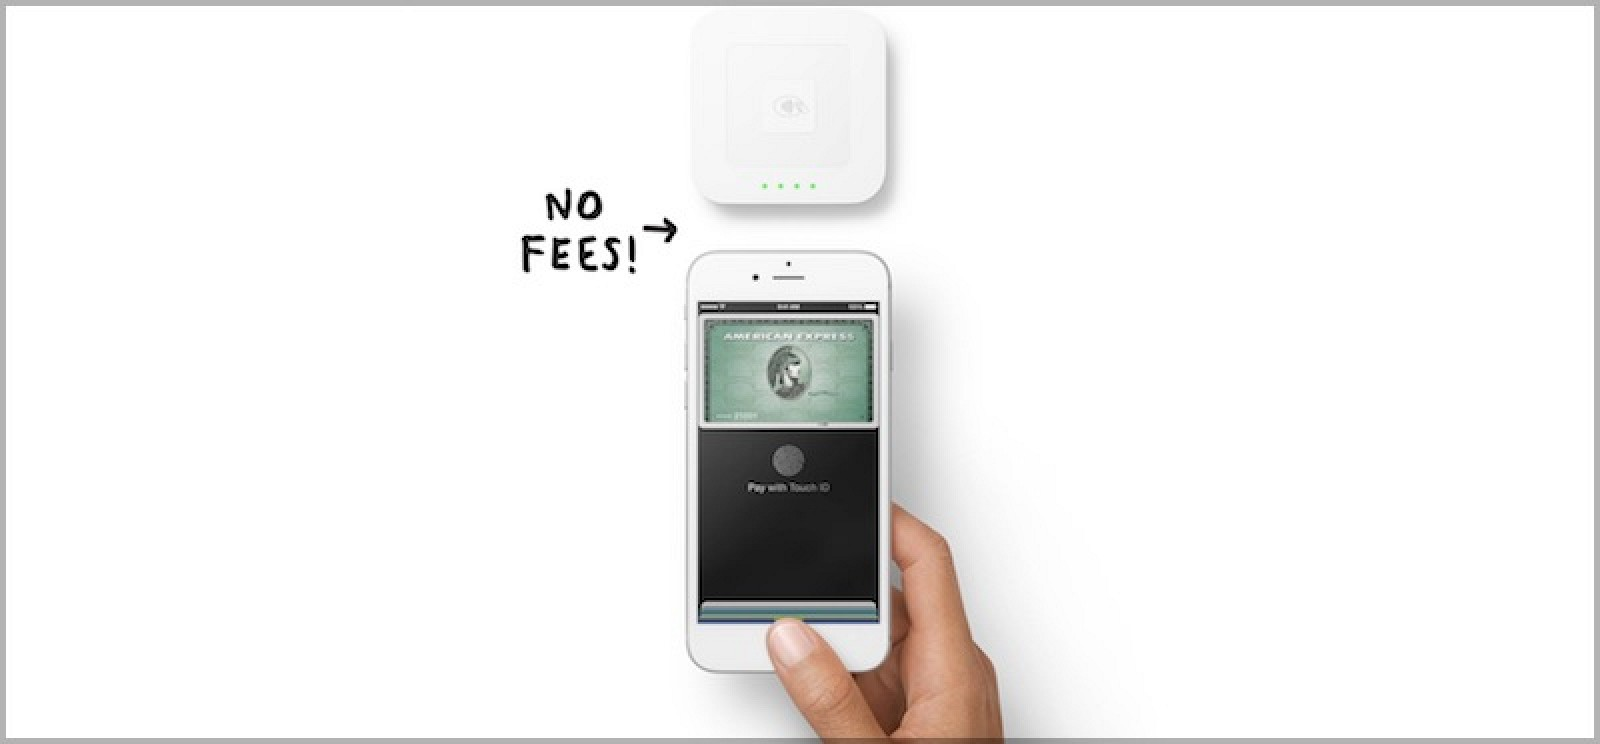 Square Offering $350 of Free Processing Fees to Small